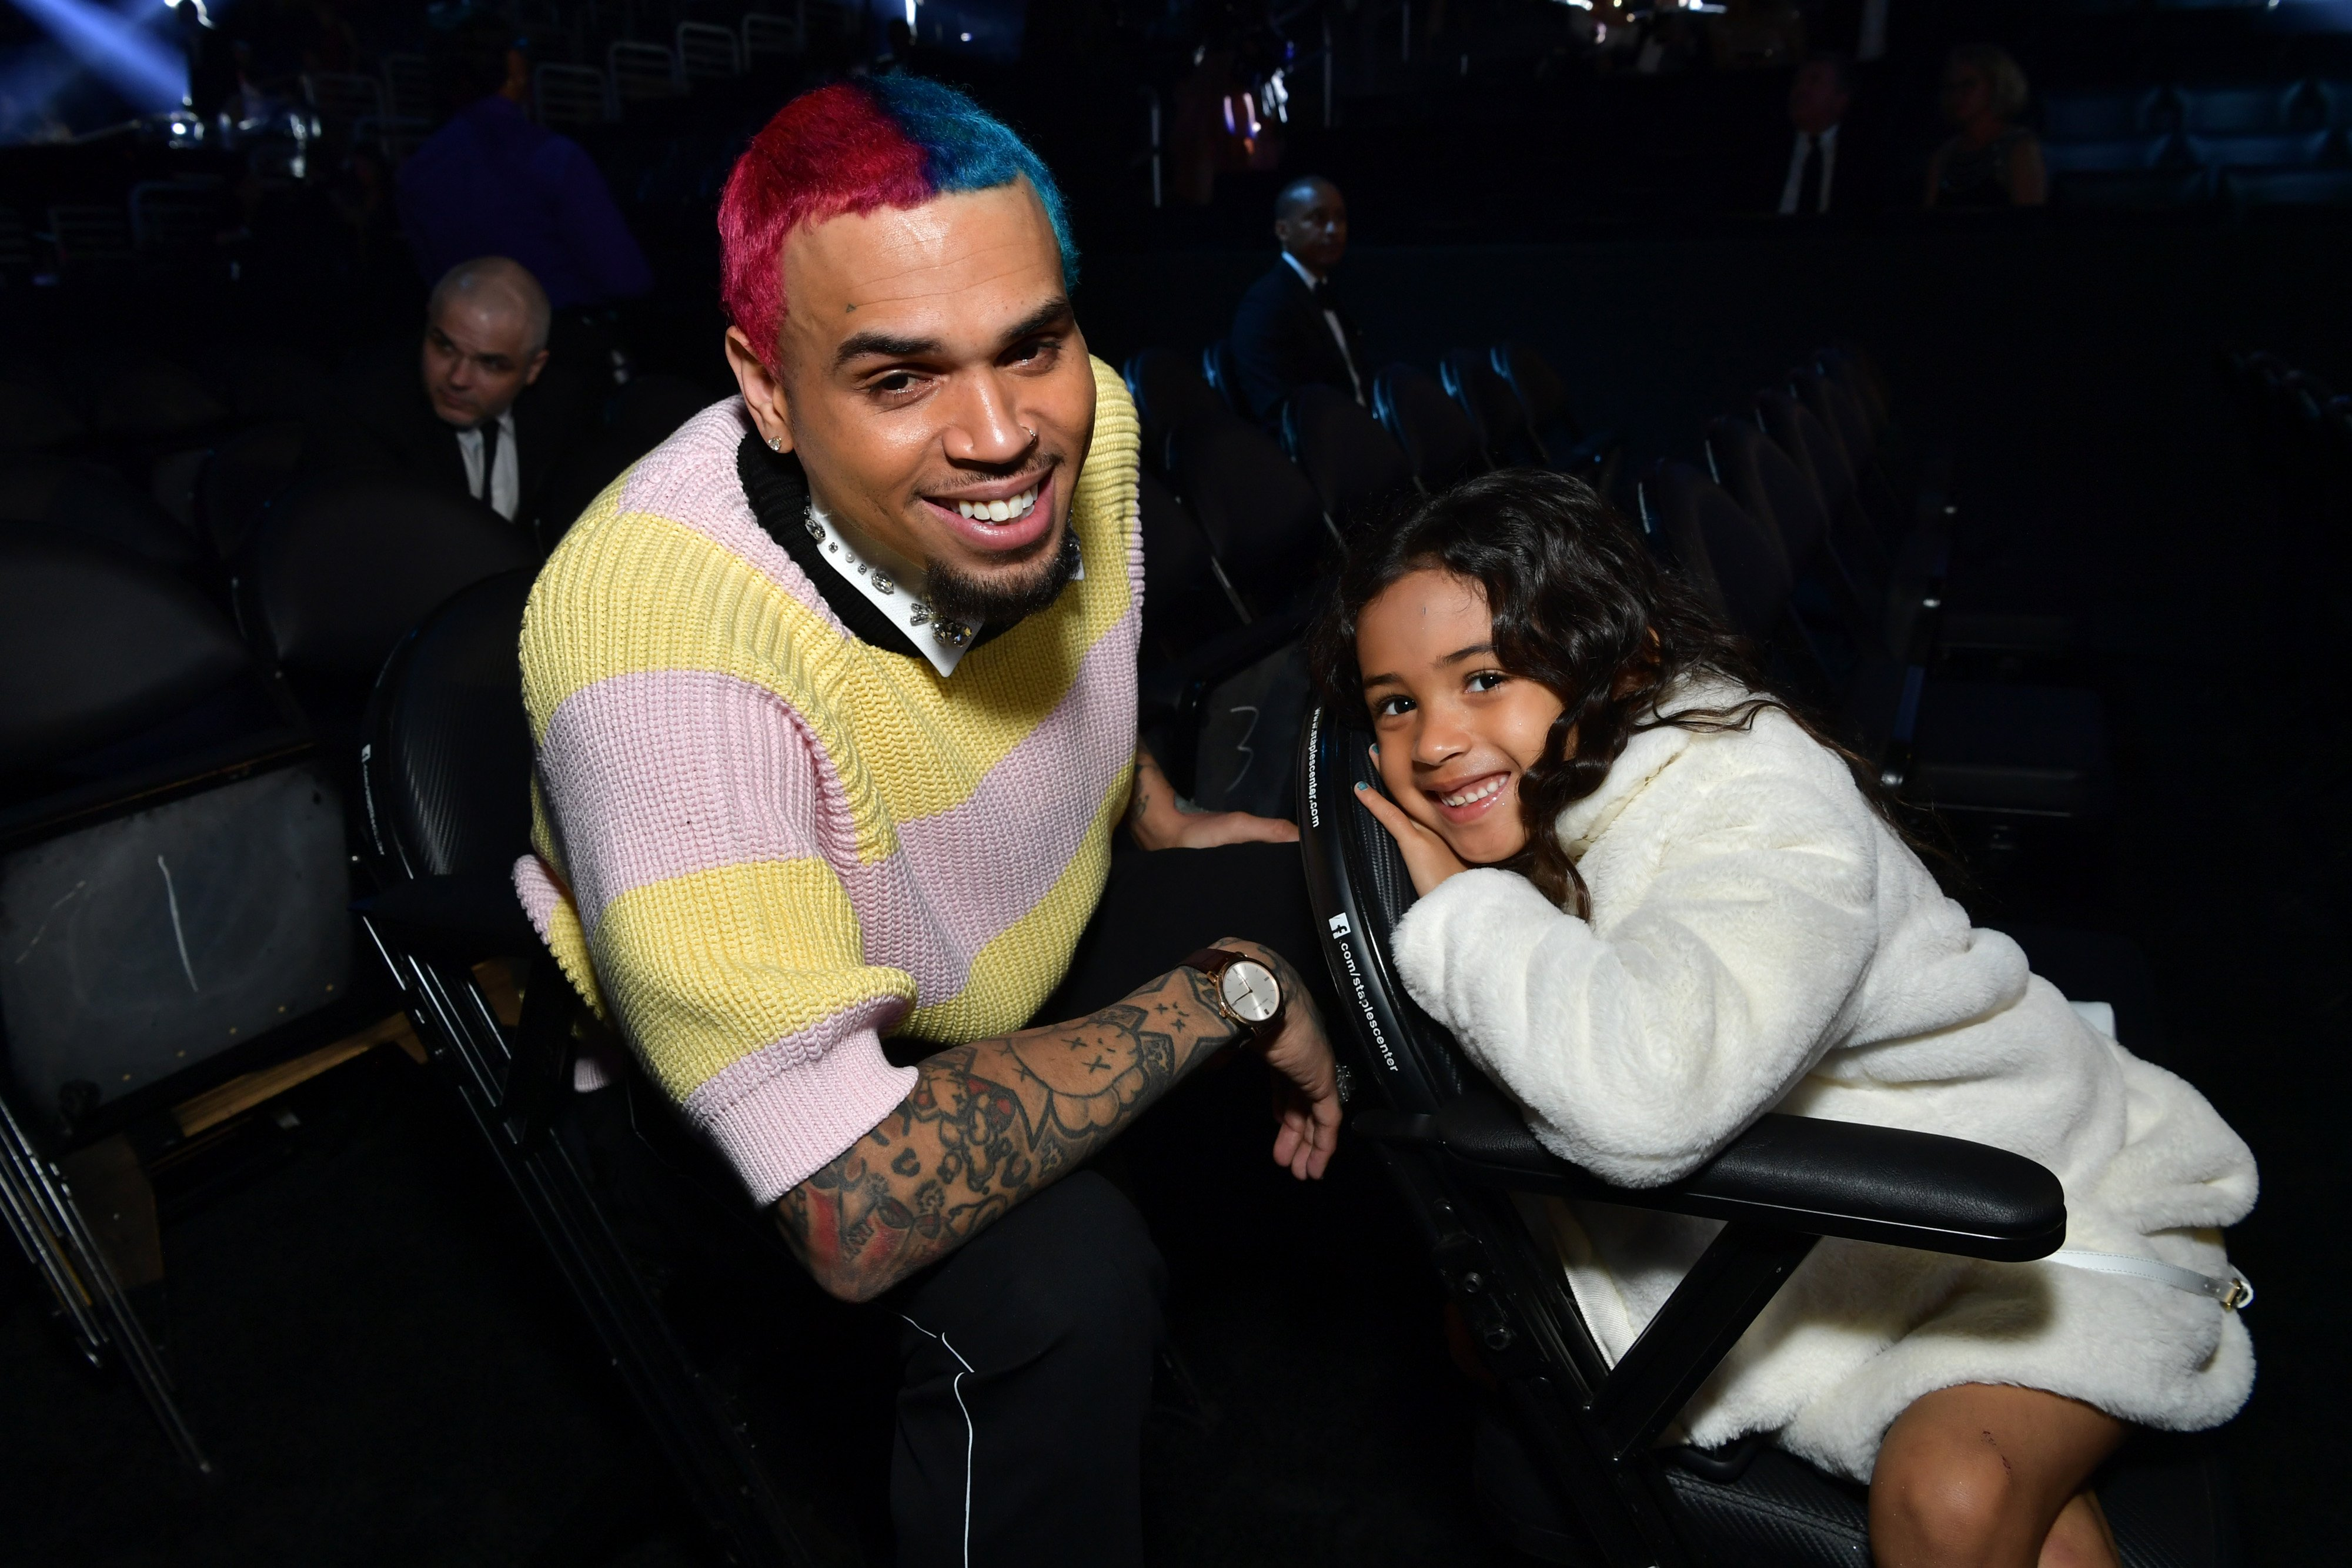 Chris Brown and his daughter, Royalty at the Grammy Awards in January 2020. | Photo: Getty Images